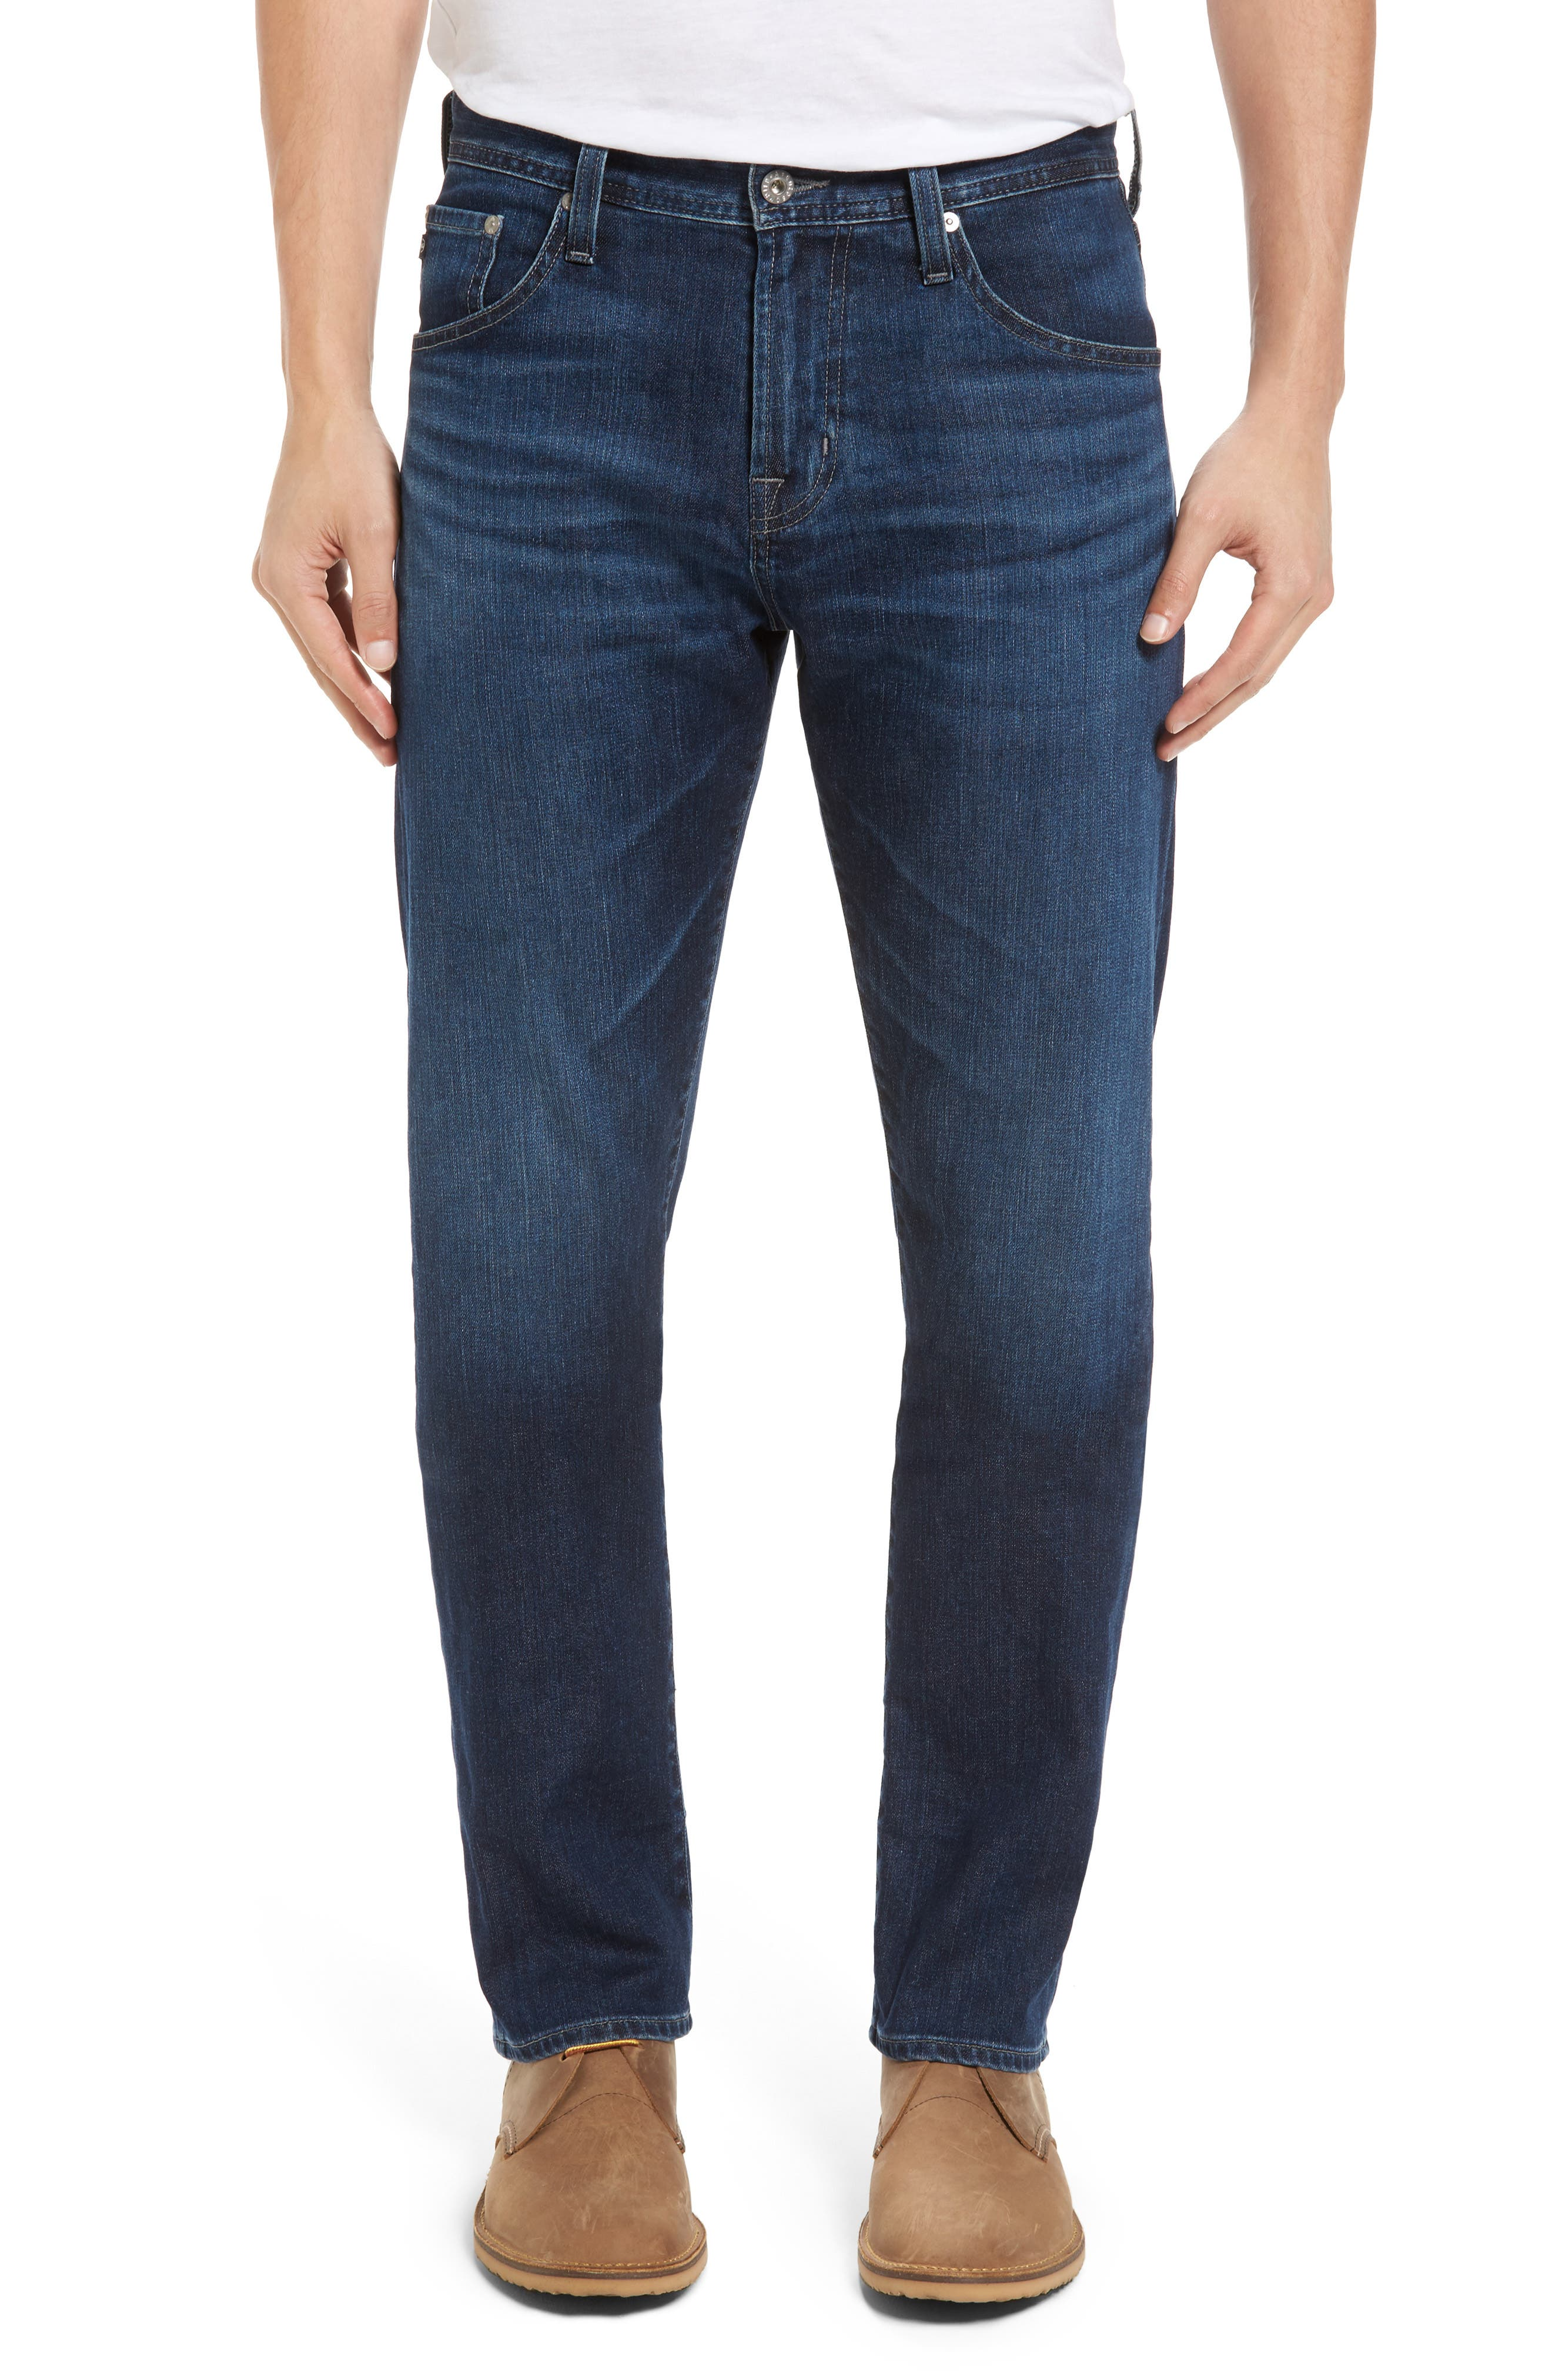 Ives Straight Leg Jeans,                         Main,                         color, 438